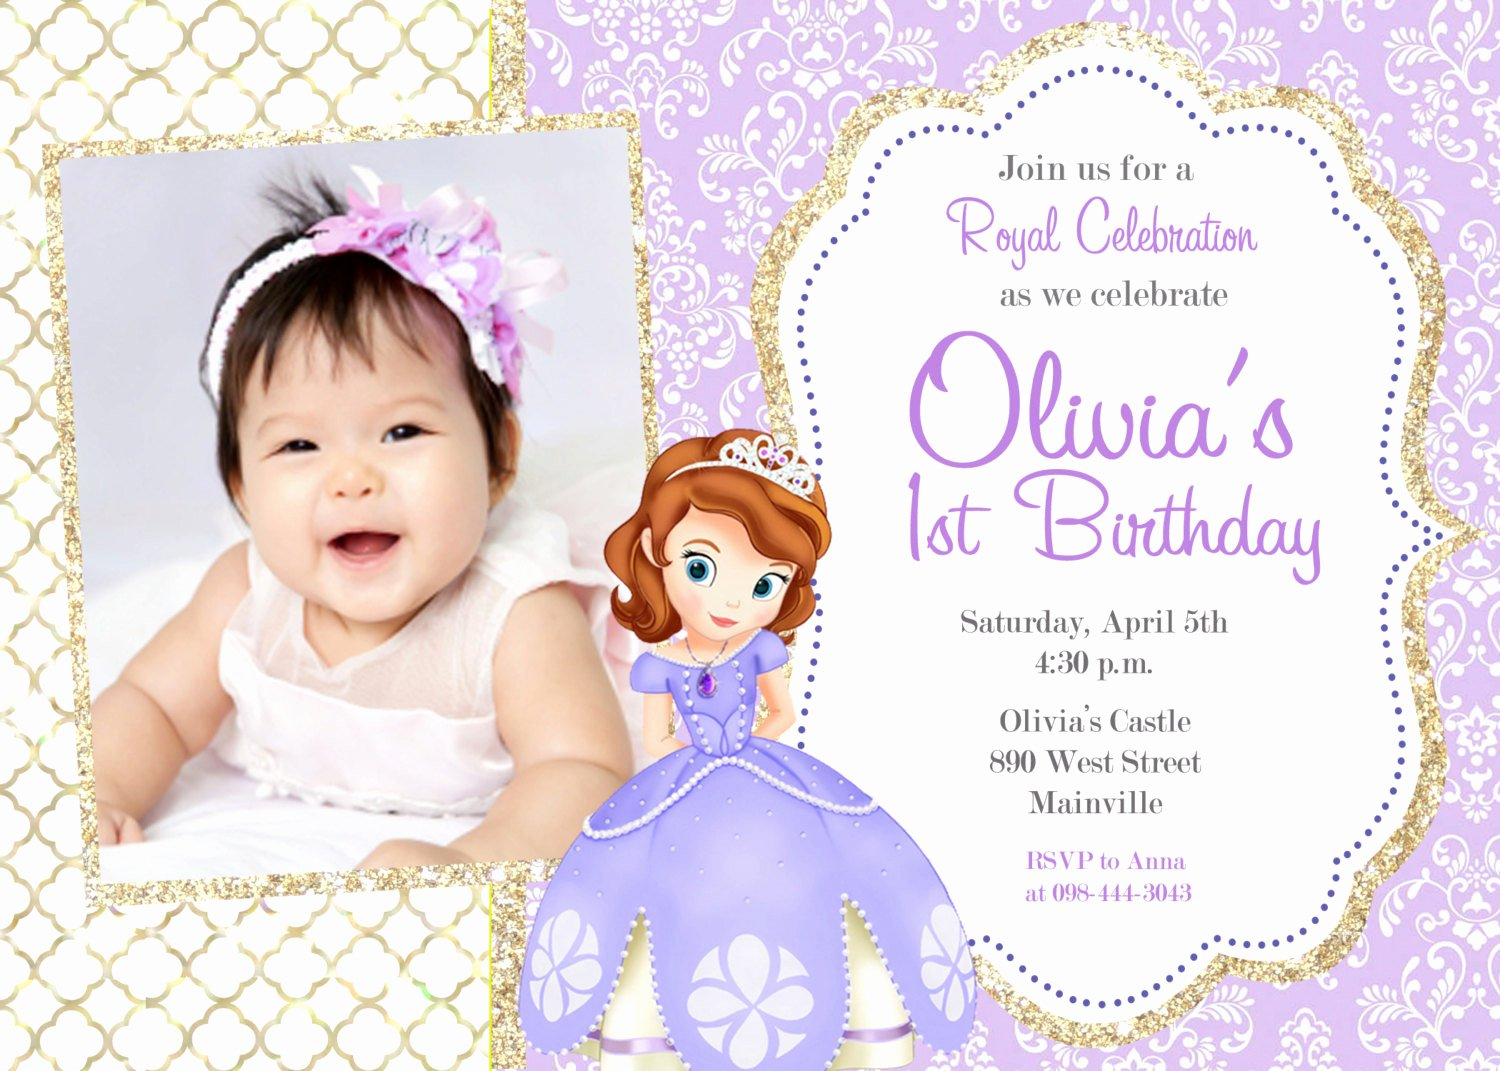 sofia the first party invitations with easy on the eye party invitation templates as a result of an application using a felicitous concept 5